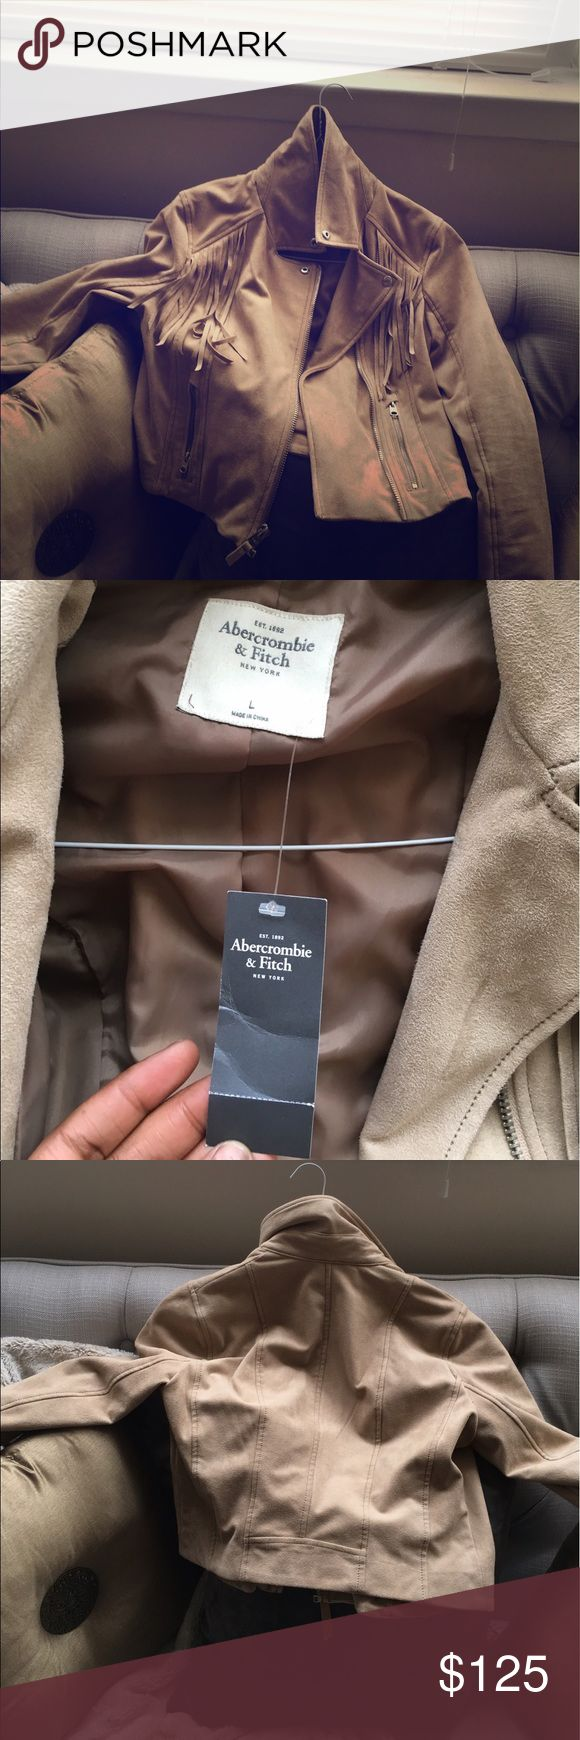 Faux suede jacket Beautiful tan suede jacket light weight.. fringed never worn !!!!! Must have for the cool nights or save it for after summer ...💋 Abercrombie & Fitch Jackets & Coats